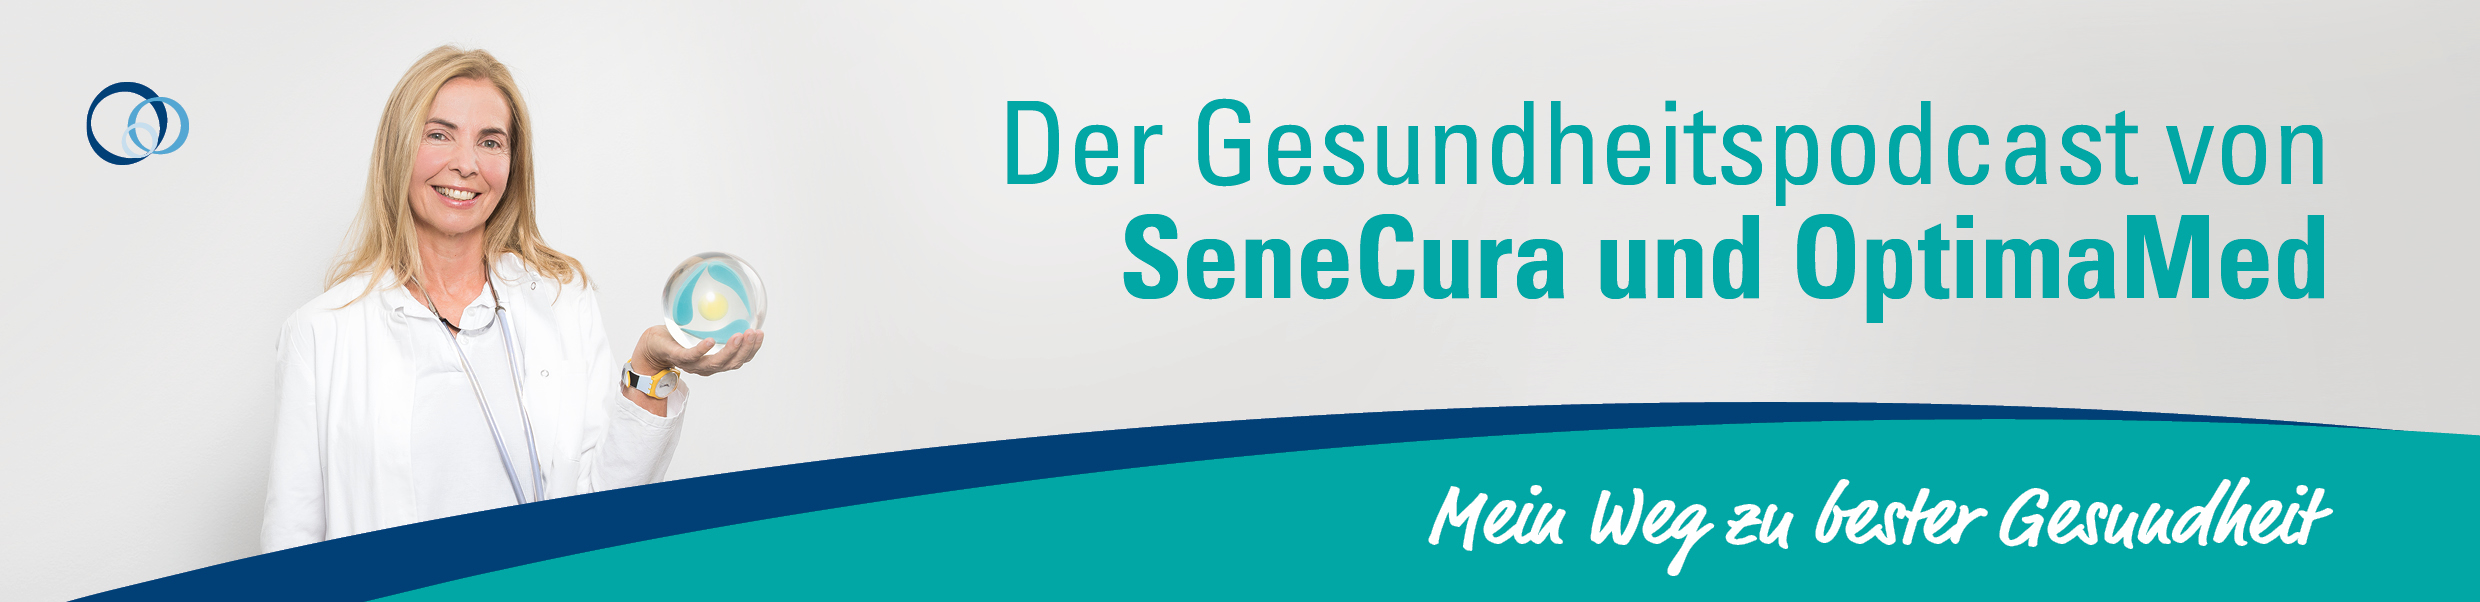 Der SeneCura OptimaMed Gesundheitspodcast